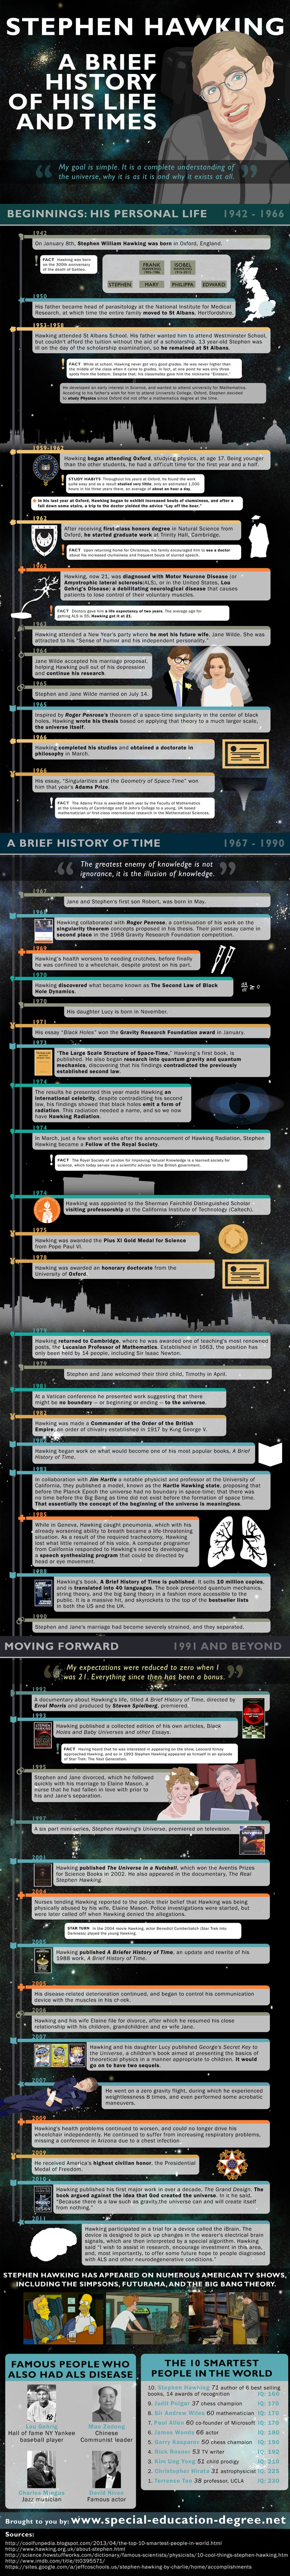 Stephen Hawking Biography-Infographic